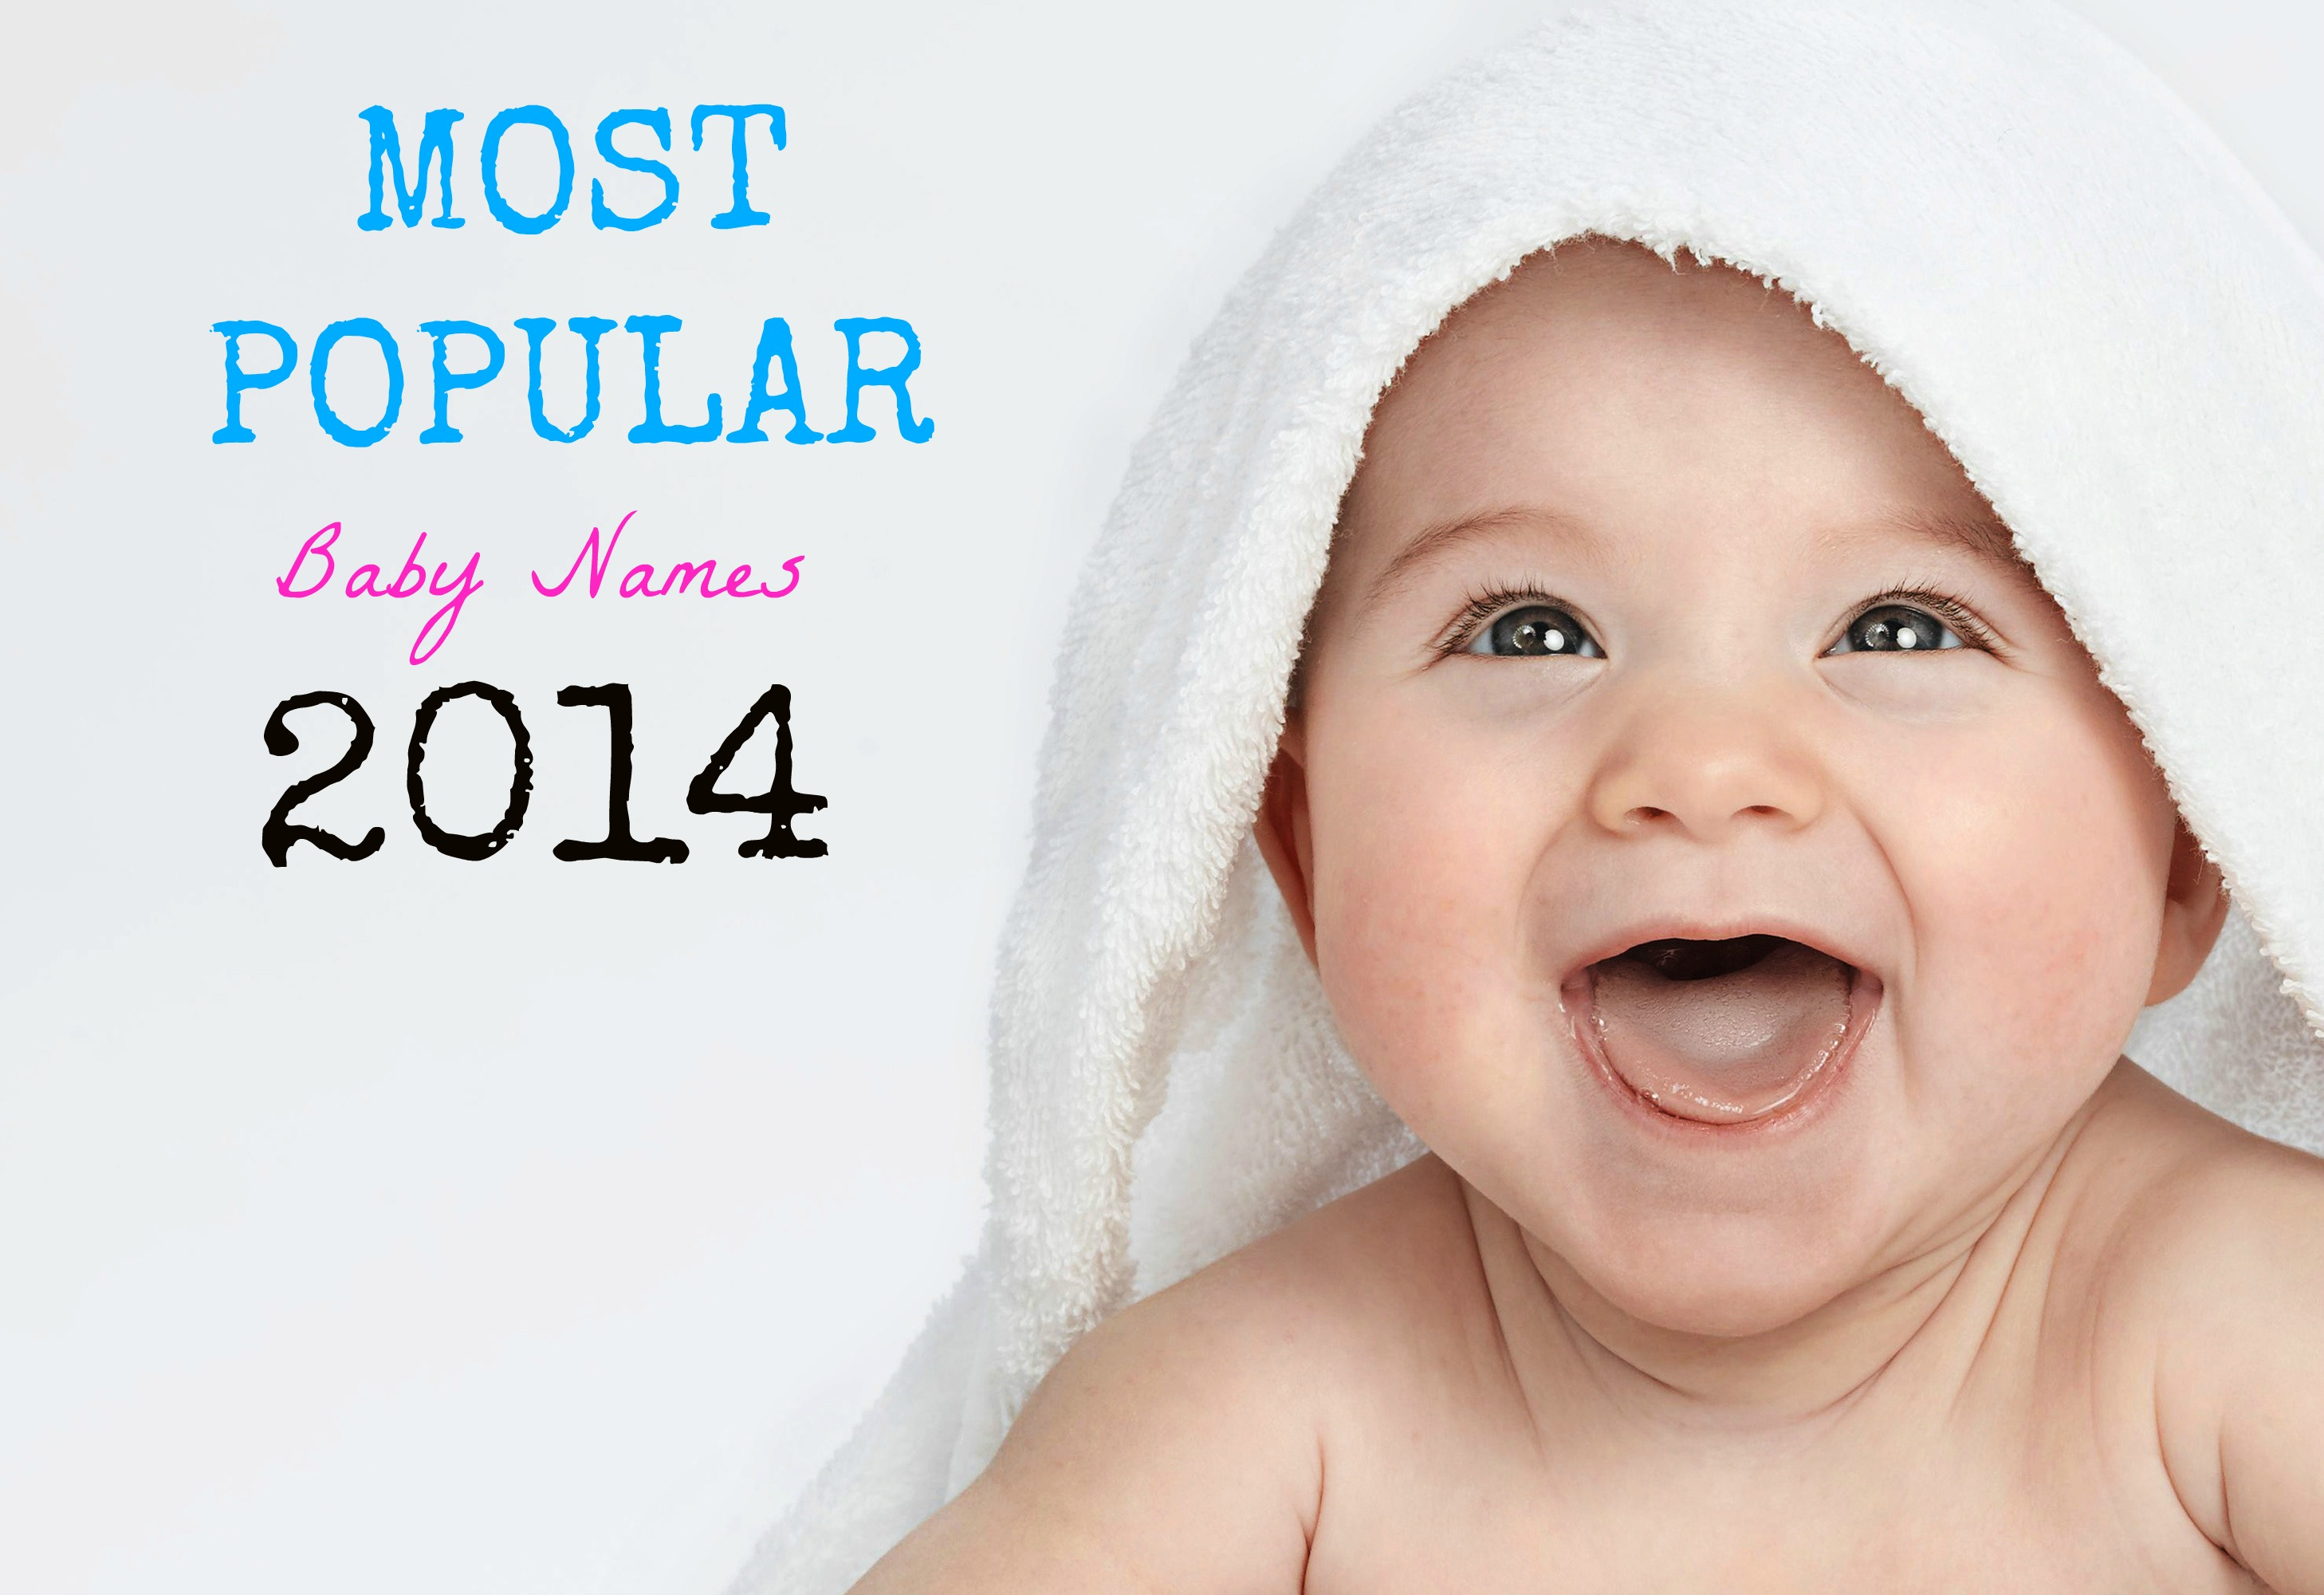 Find out the most popular baby names each year, from today's hottest names all the way back to the darlings of the s.